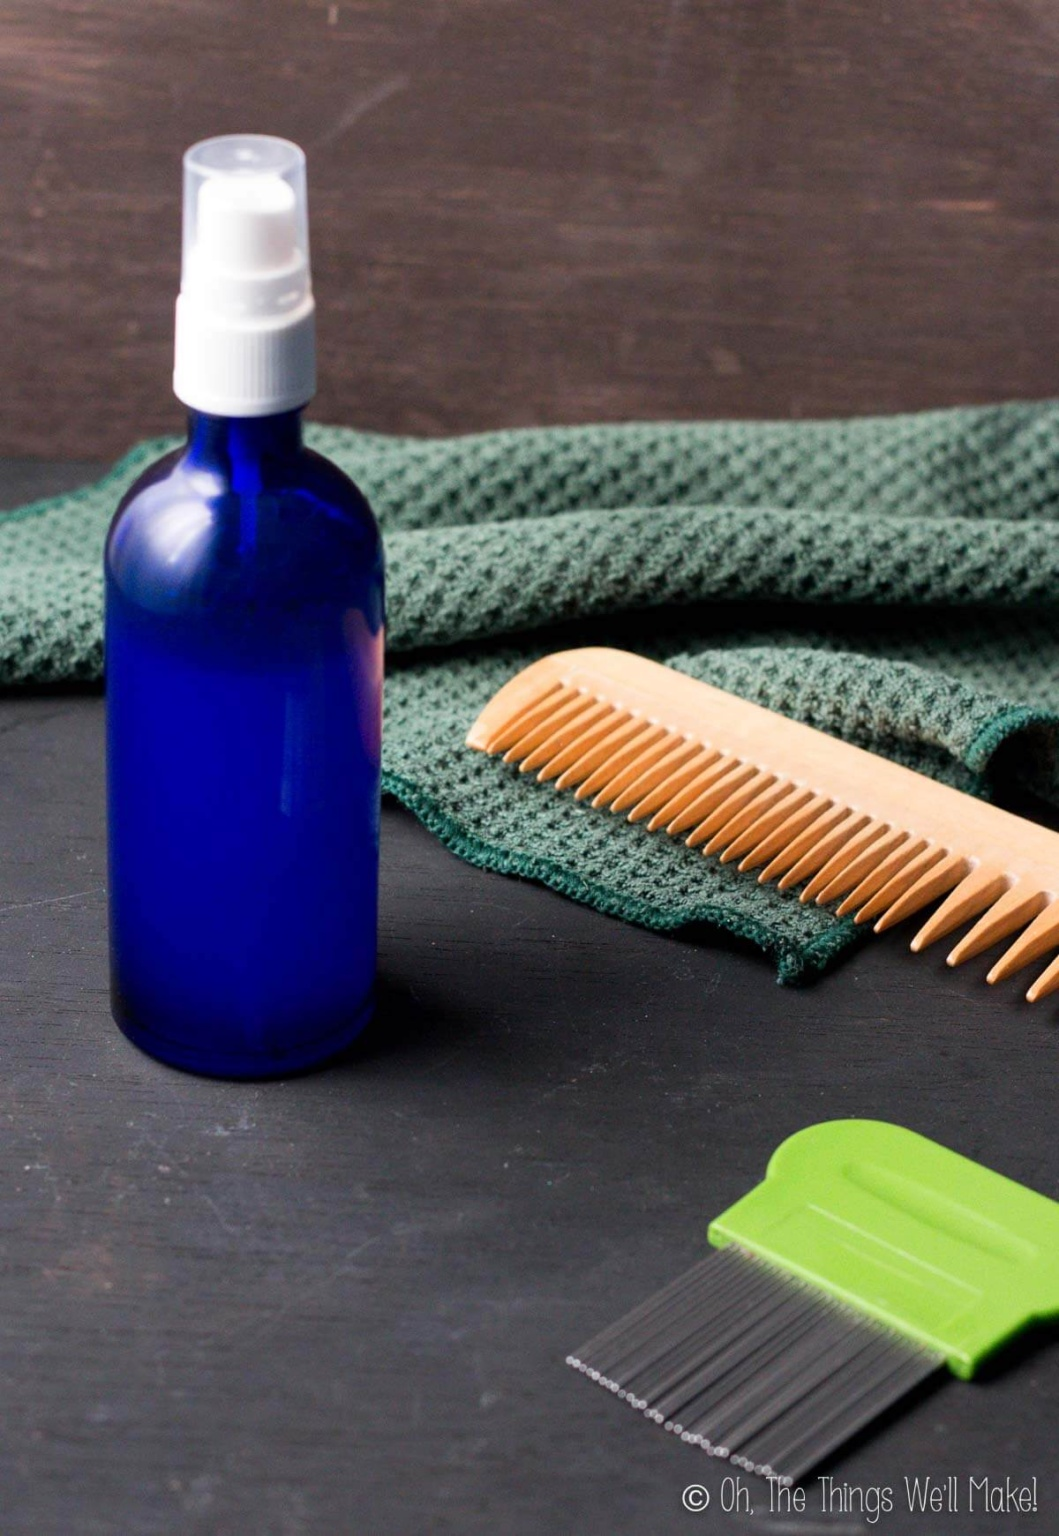 A blue botte filled with a homemade lice repellent next to two combs and a washcloth